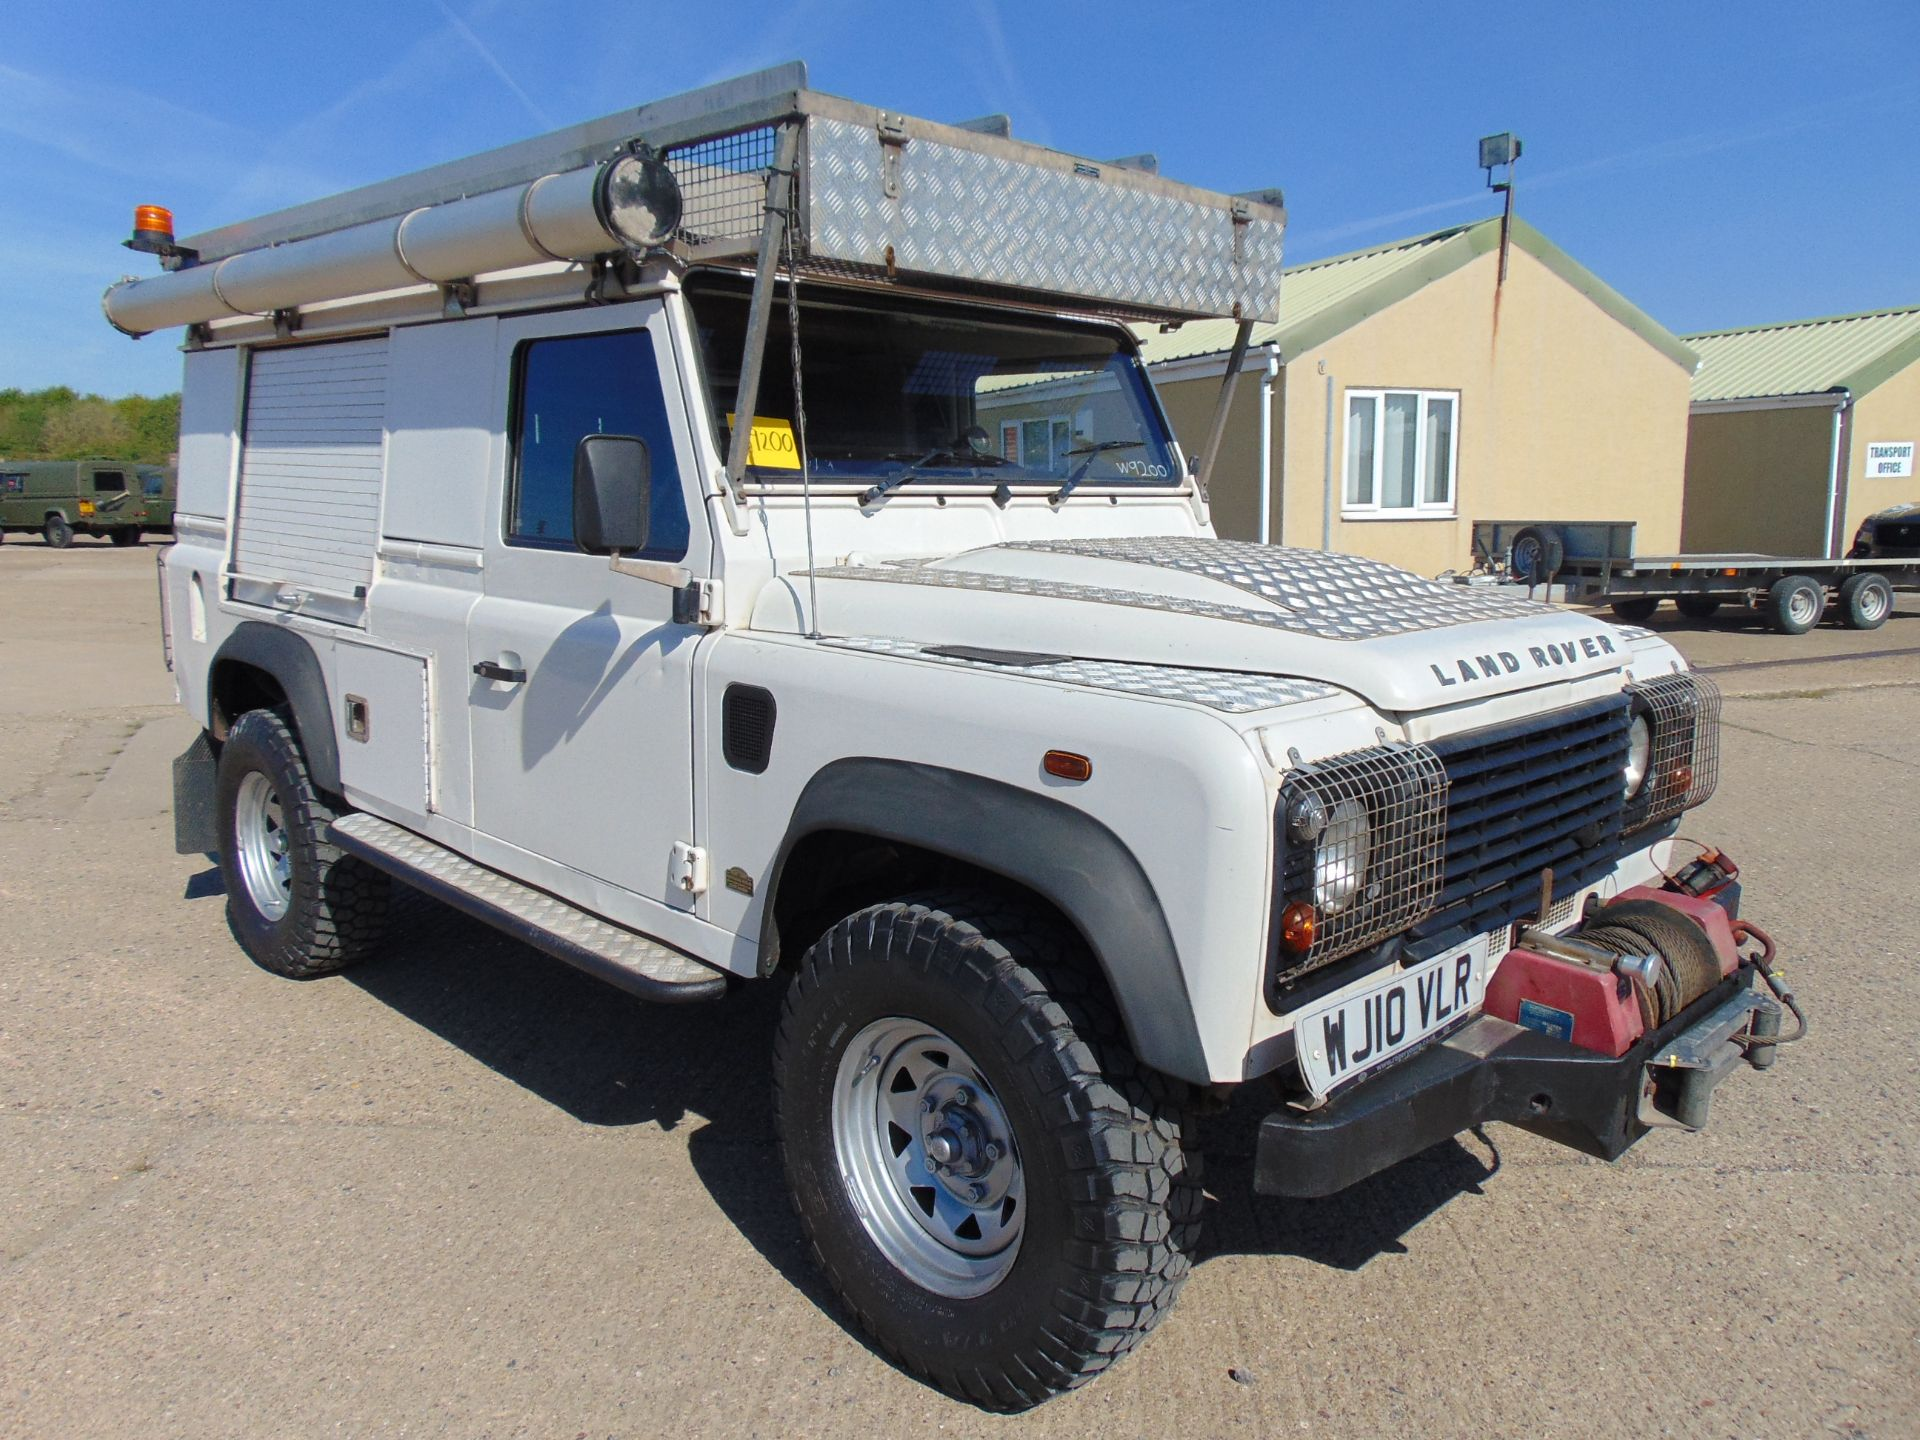 Lot 22 - Land Rover Defender 110 Puma Hardtop 4x4 Special Utility (Mobile Workshop) complete with Winch